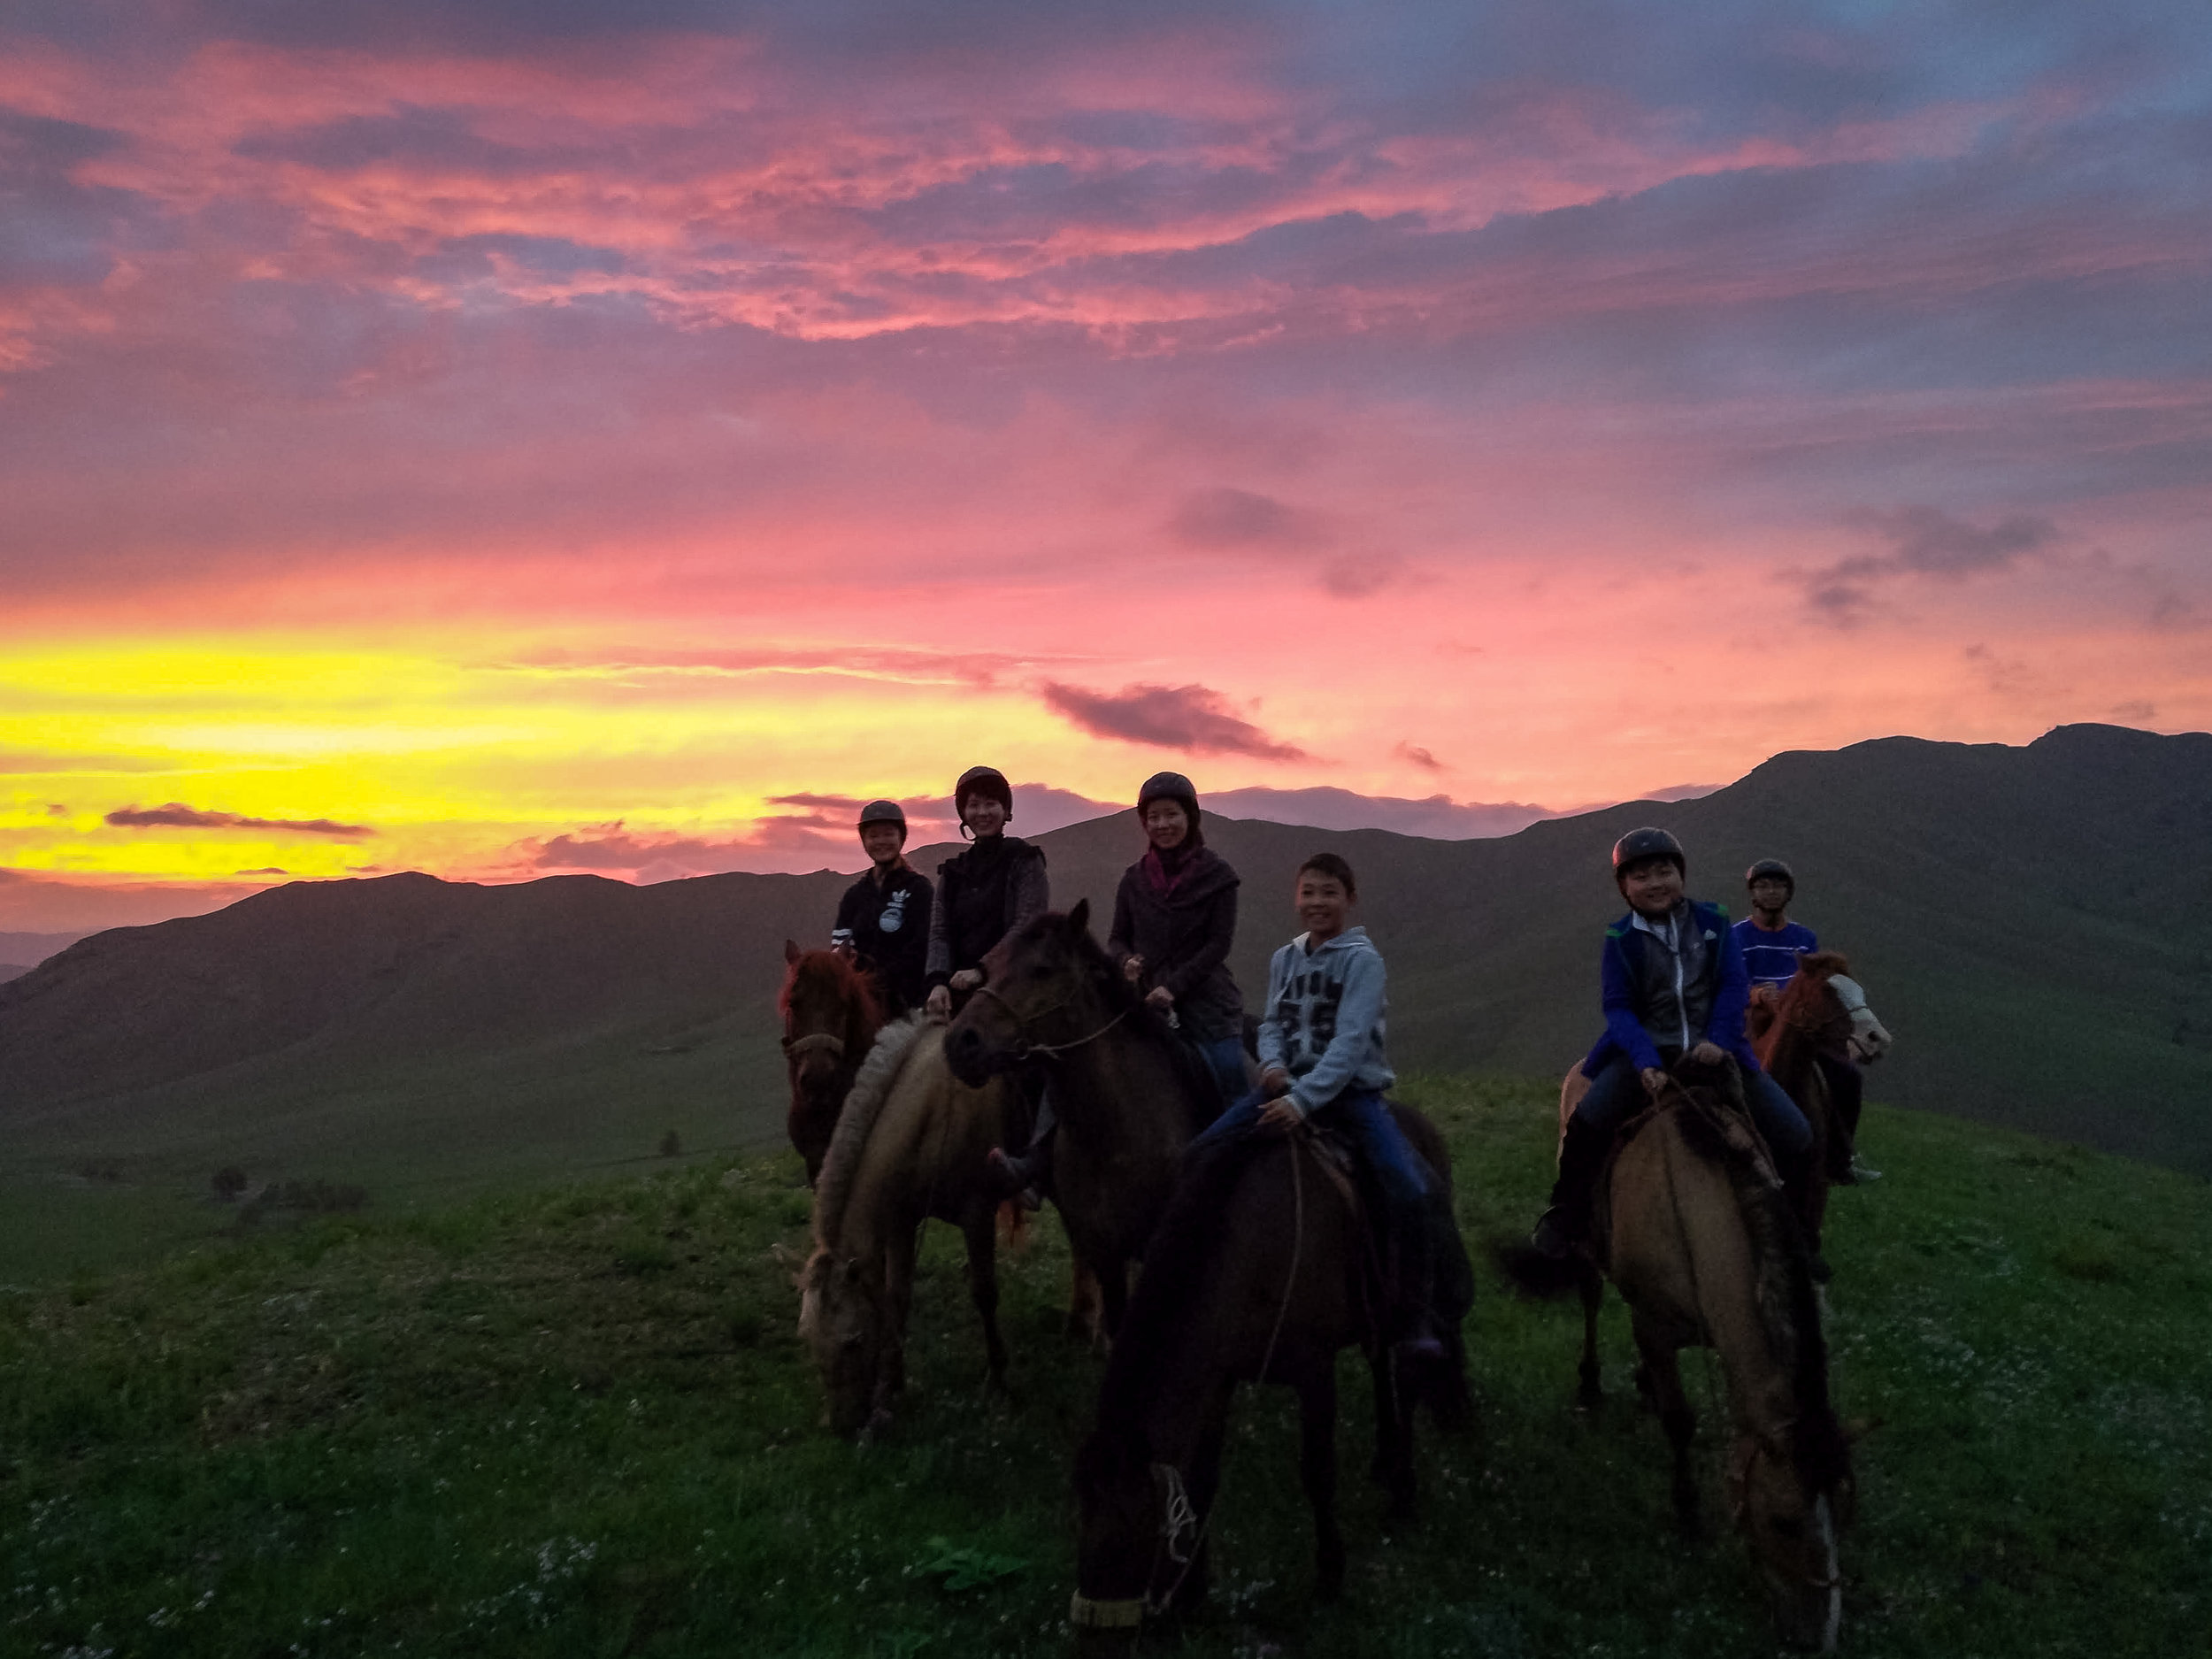 Bring your camera and enjoy the spectacular beauty of a sunset in the Terelj National Park -